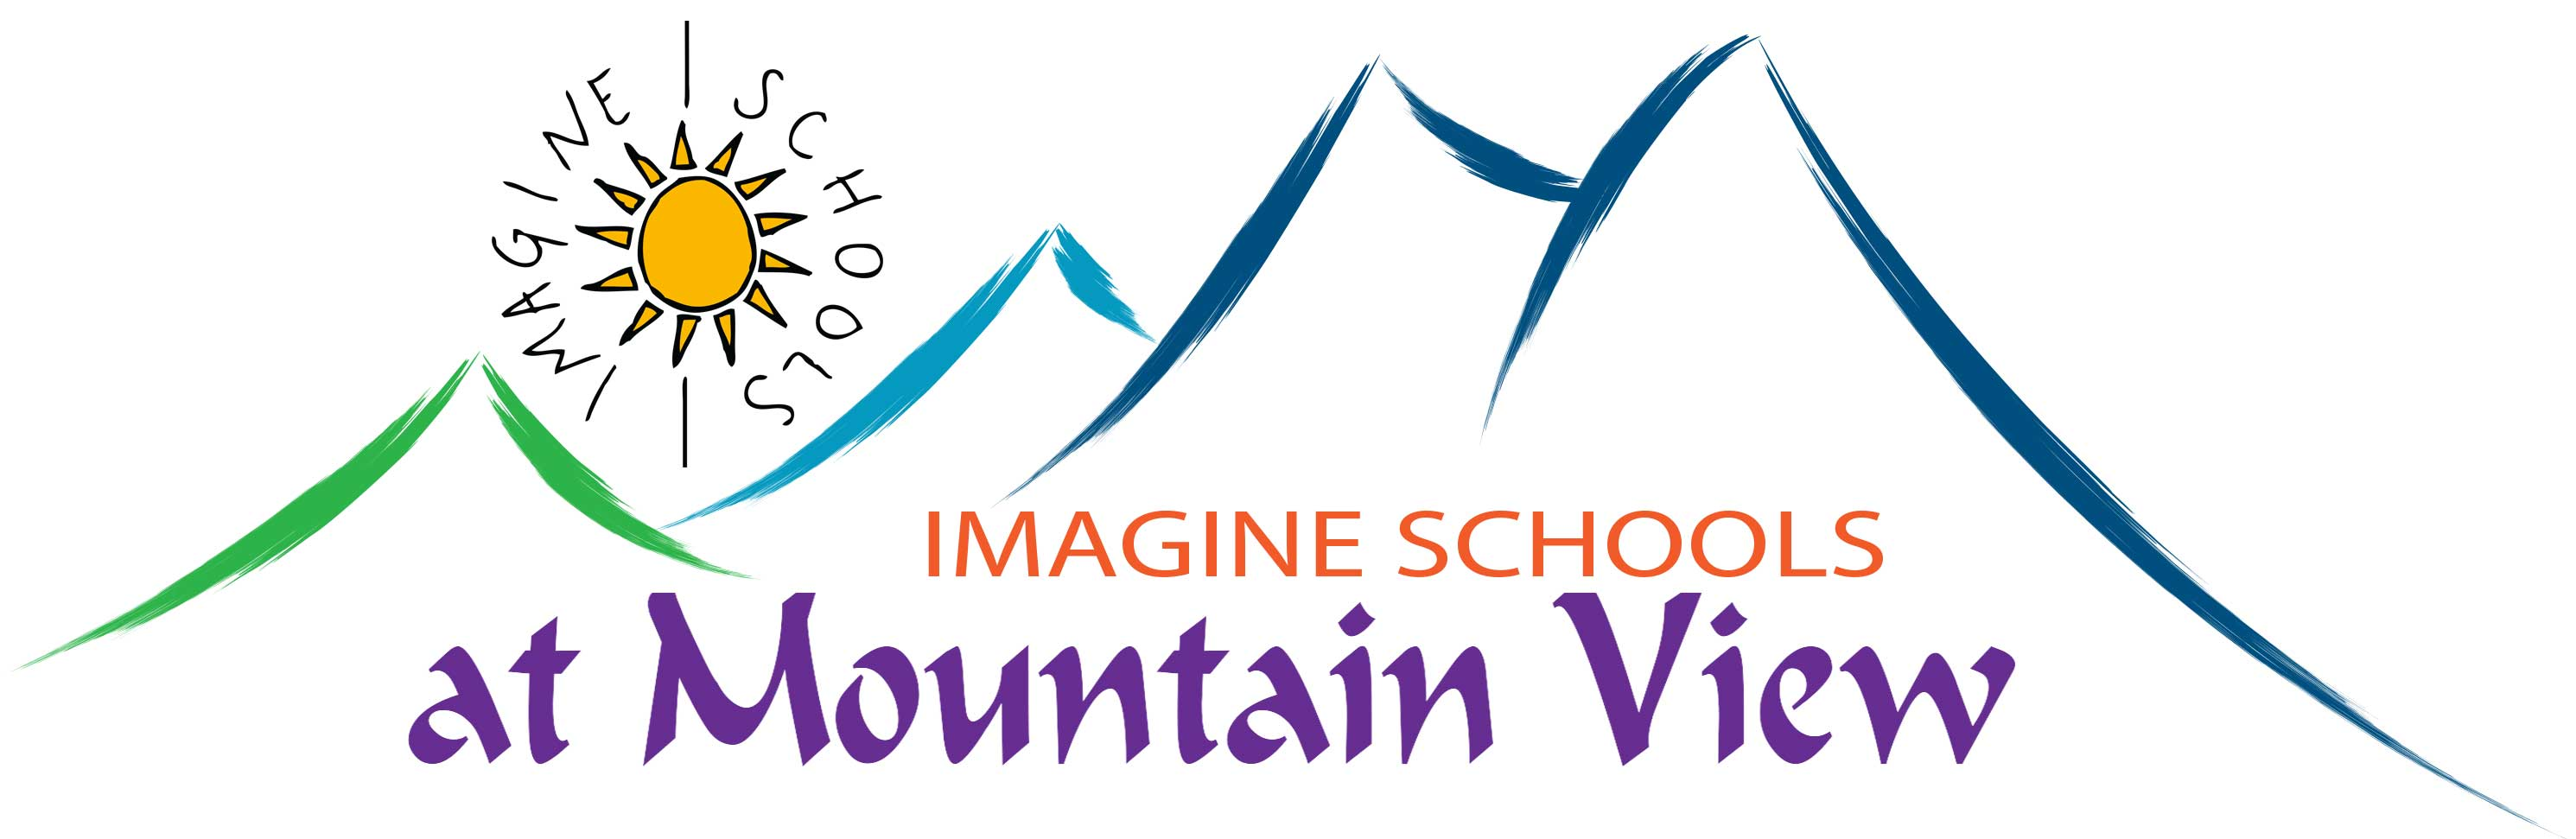 Imagine School at Mountain View